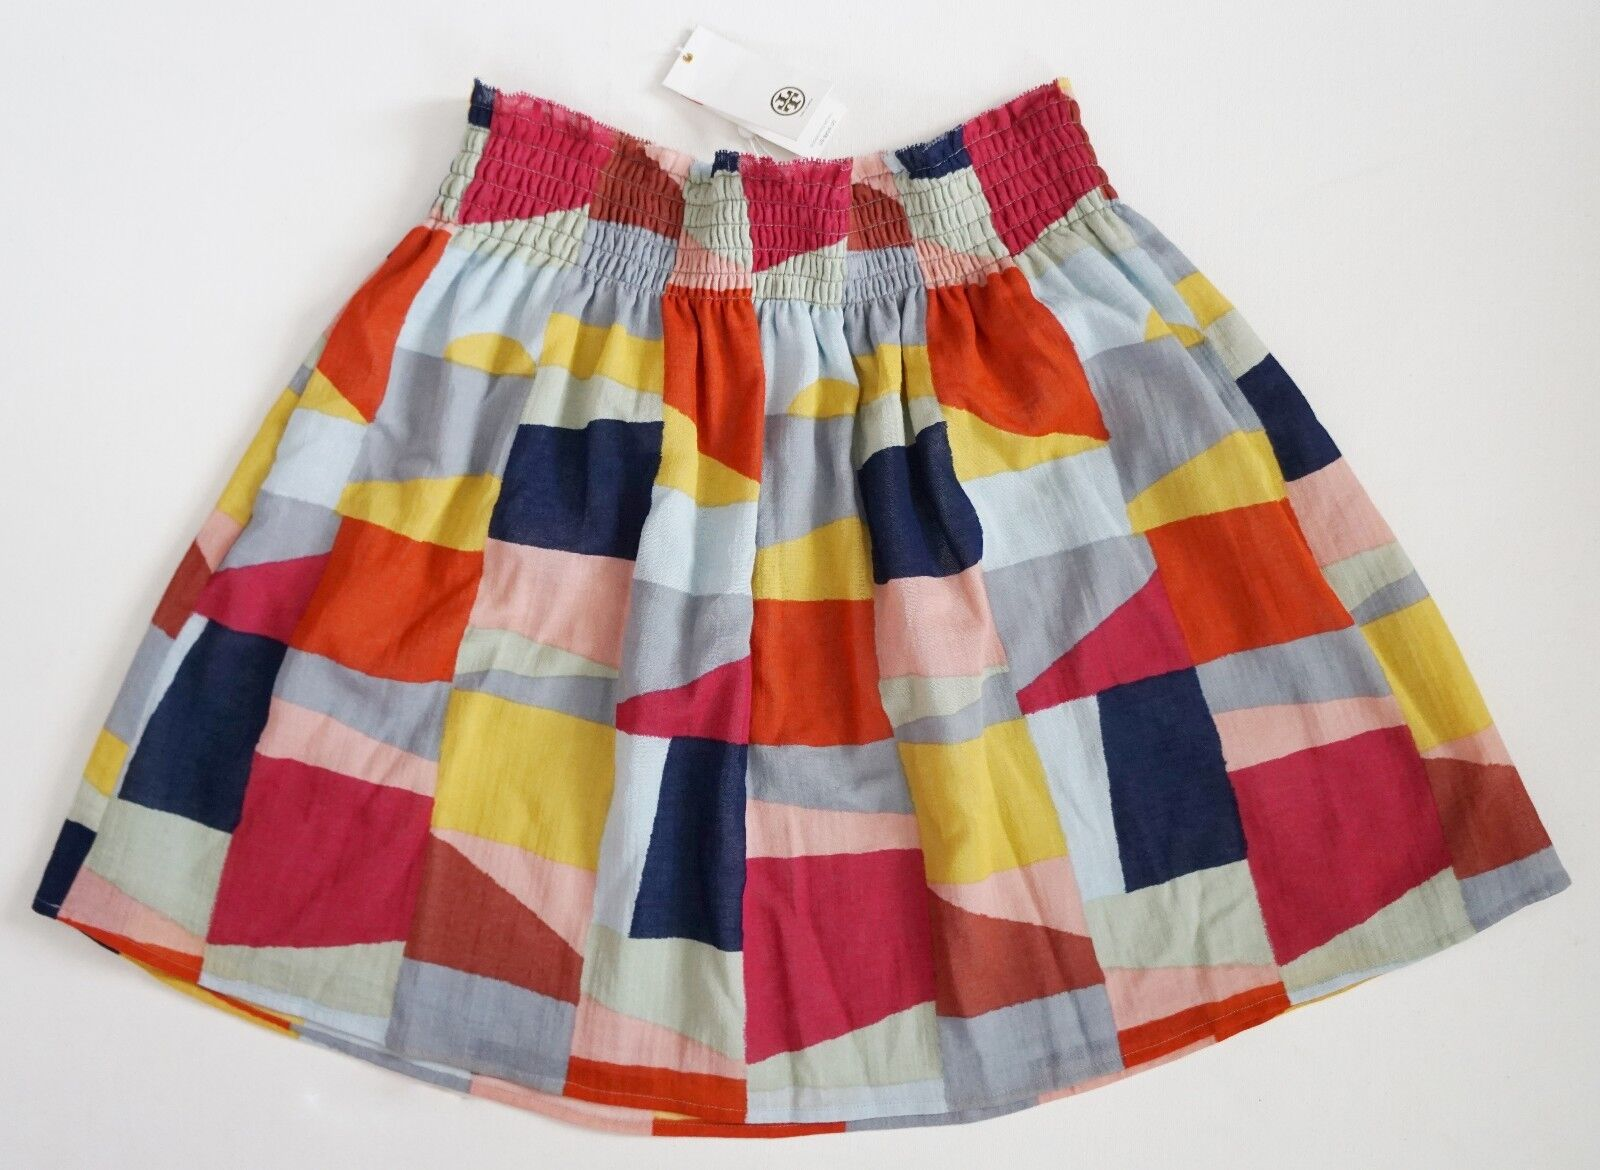 225 NWT TORY BURCH Multi-colord 100% Cotton  TRISTA  PLEATED Skirt L